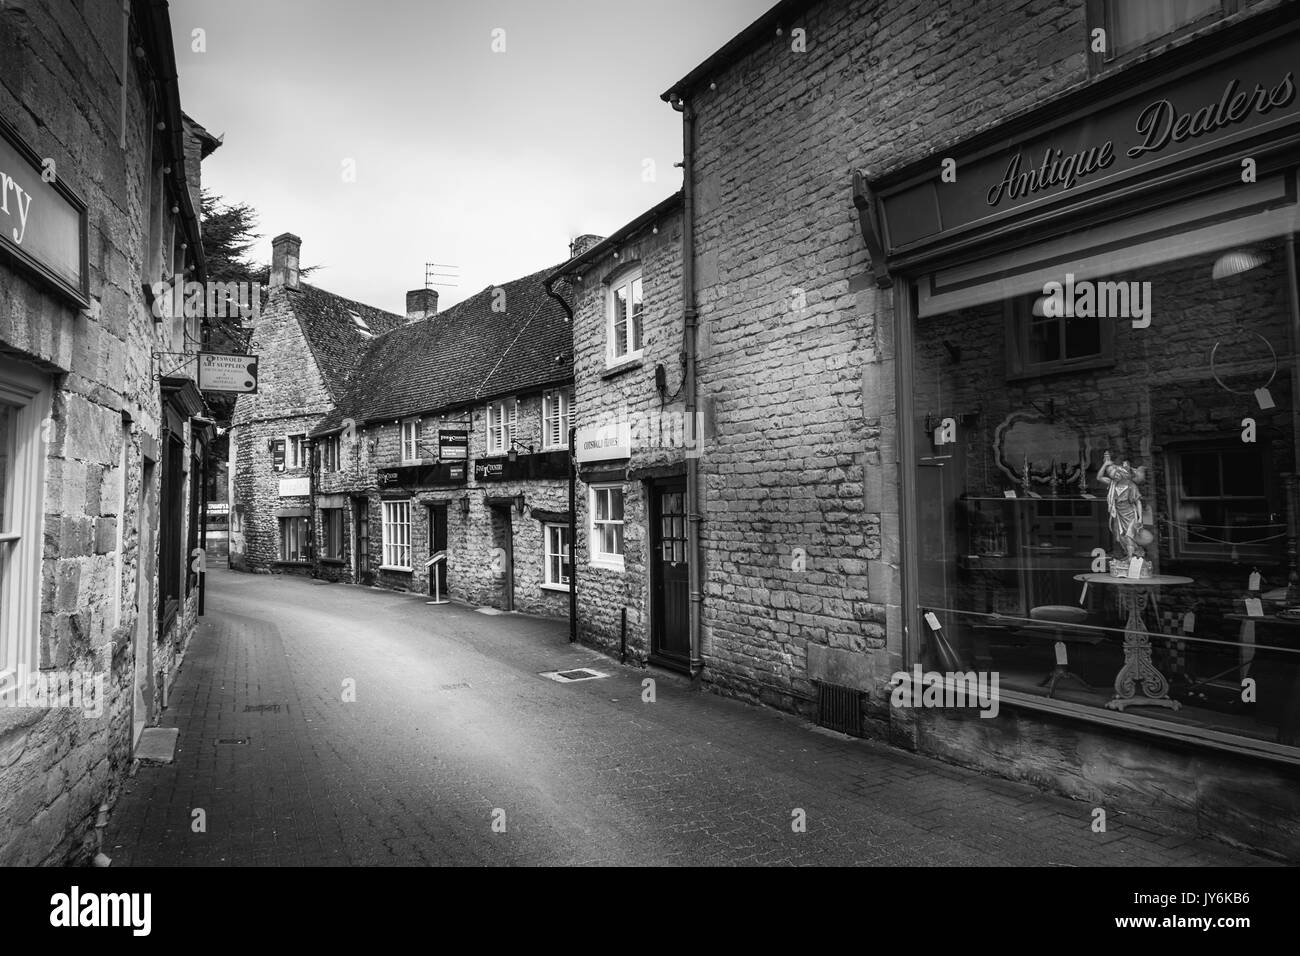 A black and white view of an old antique shop in the Cotswolds, England - Stock Image